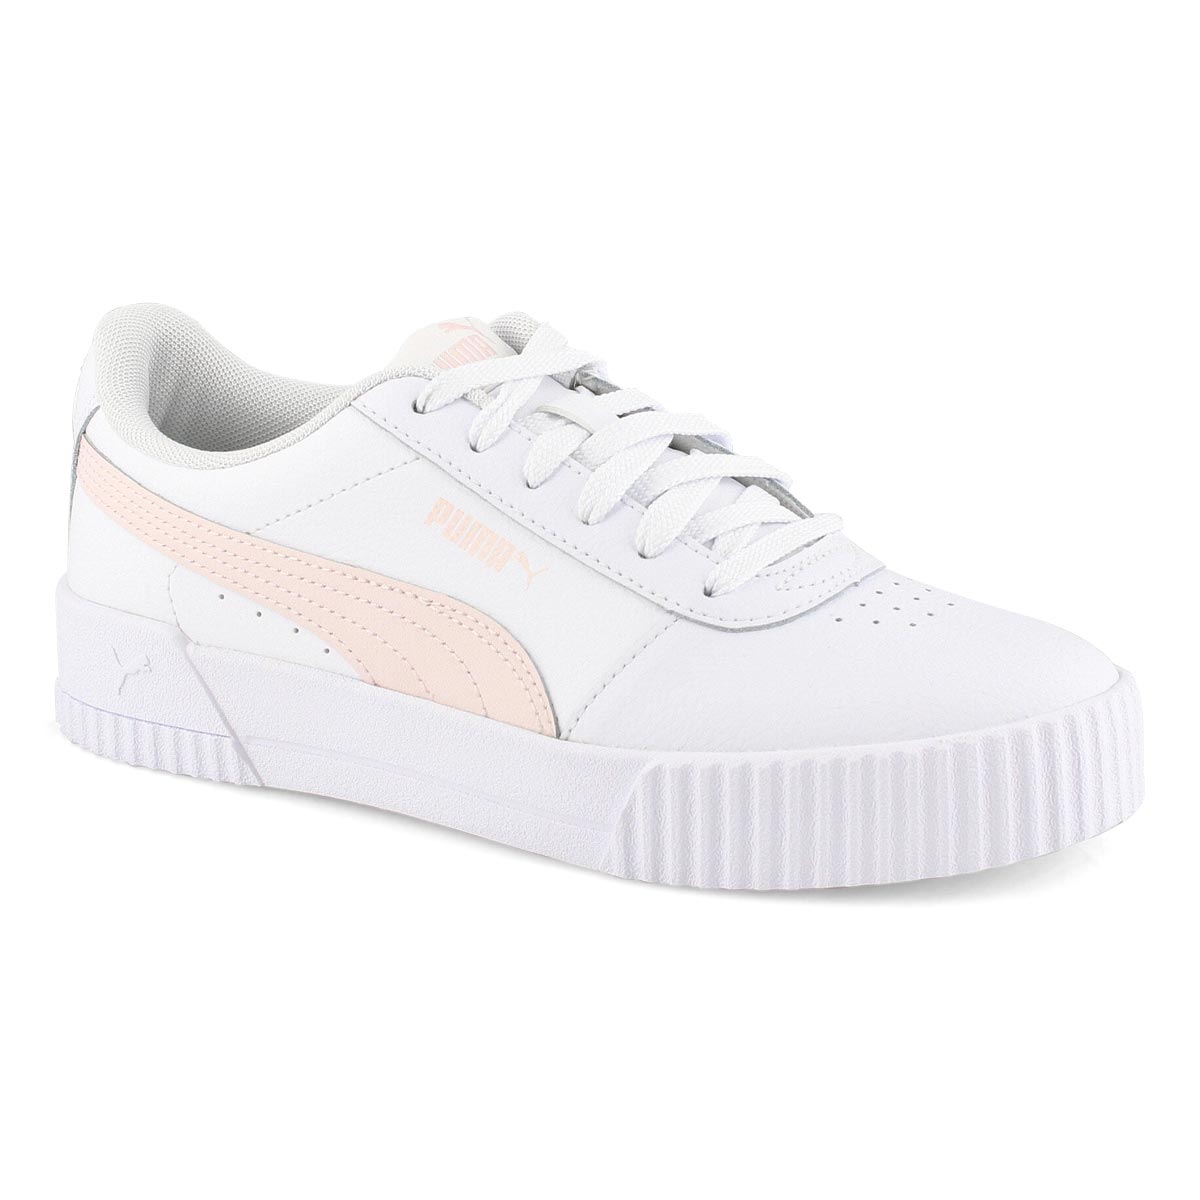 Lds Carina L wht/pnk lace up sneaker